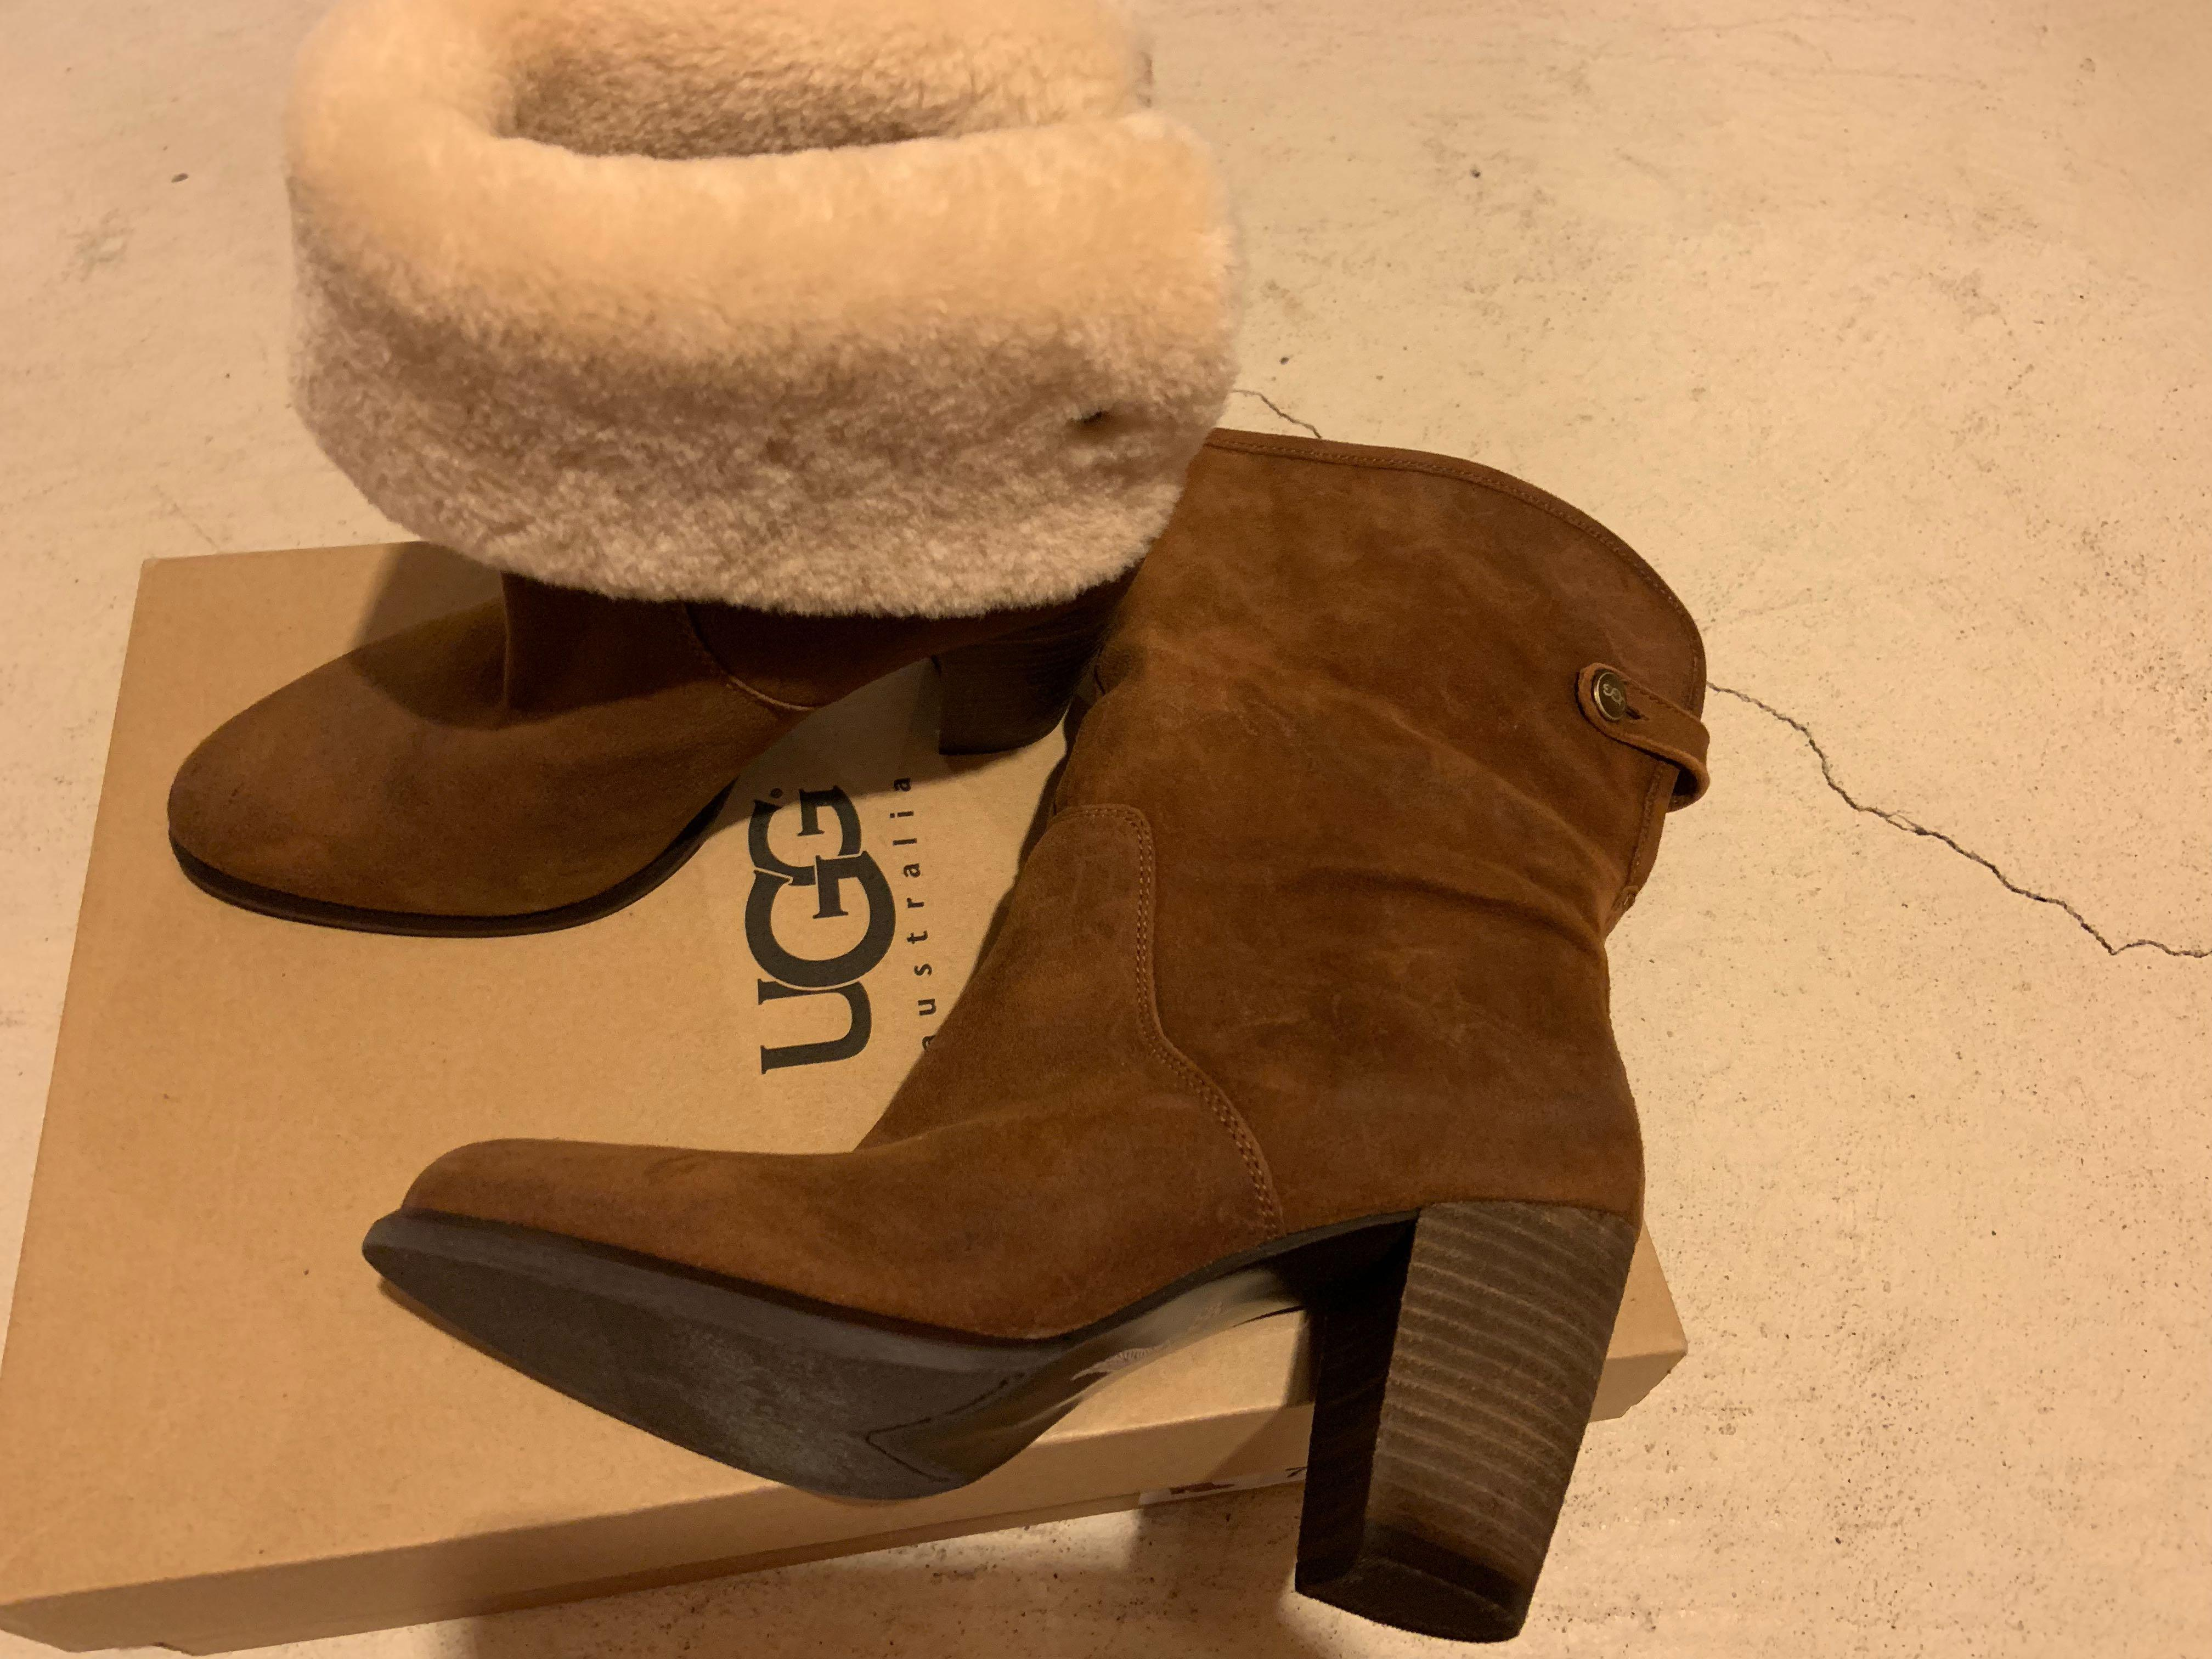 Brand new in box uggs size 7. The fur can be rolled up for another look. Retails for over $200. Super stylish and warm